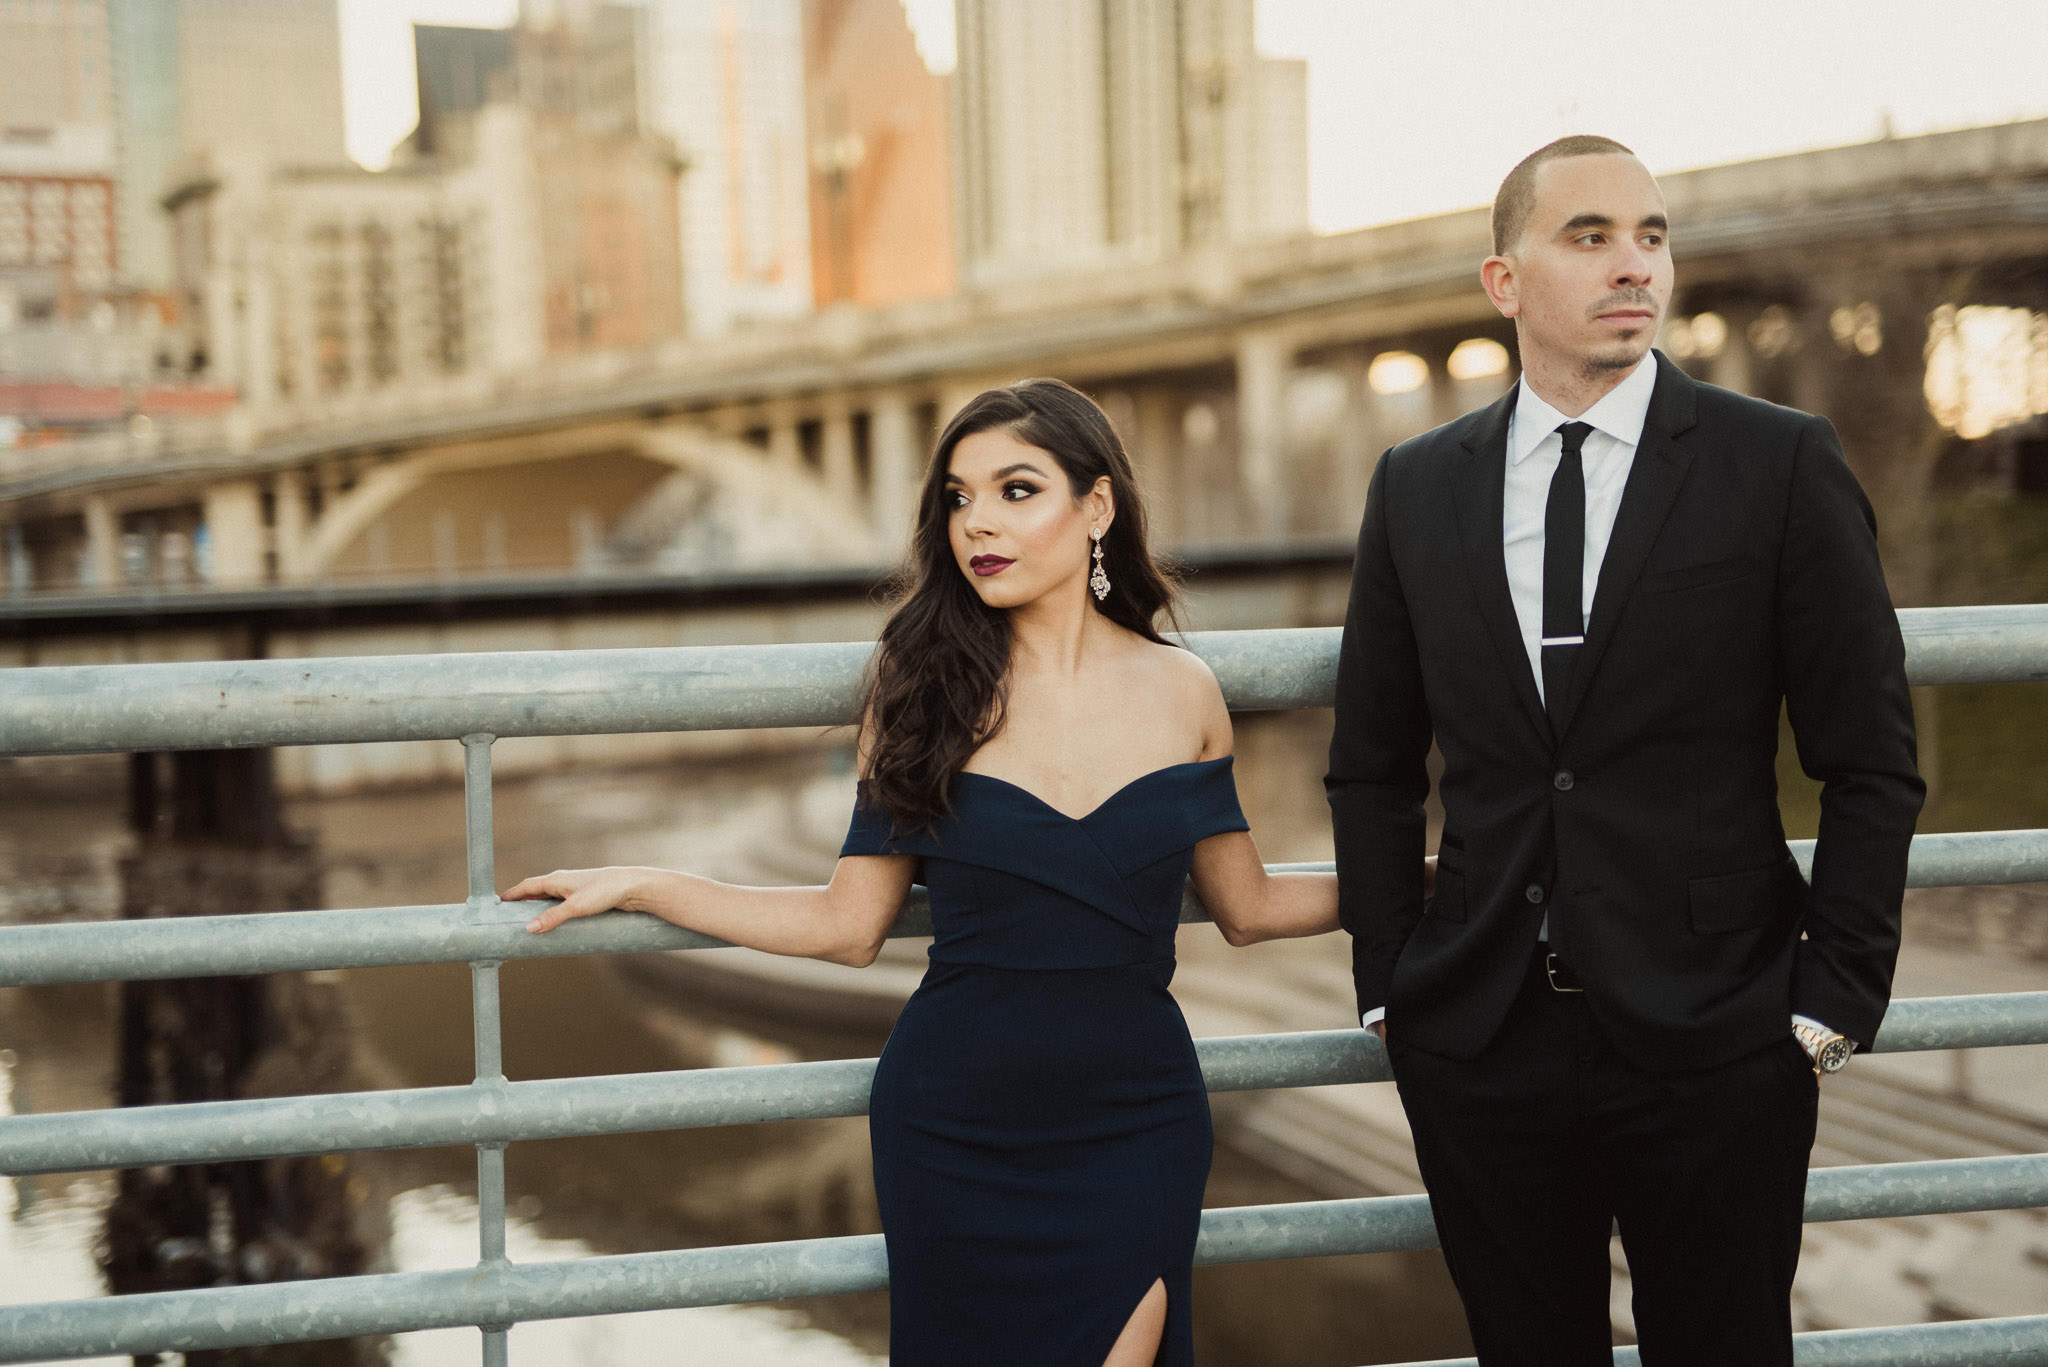 downtown-houston-urban-city-classy-engagement-photorapher